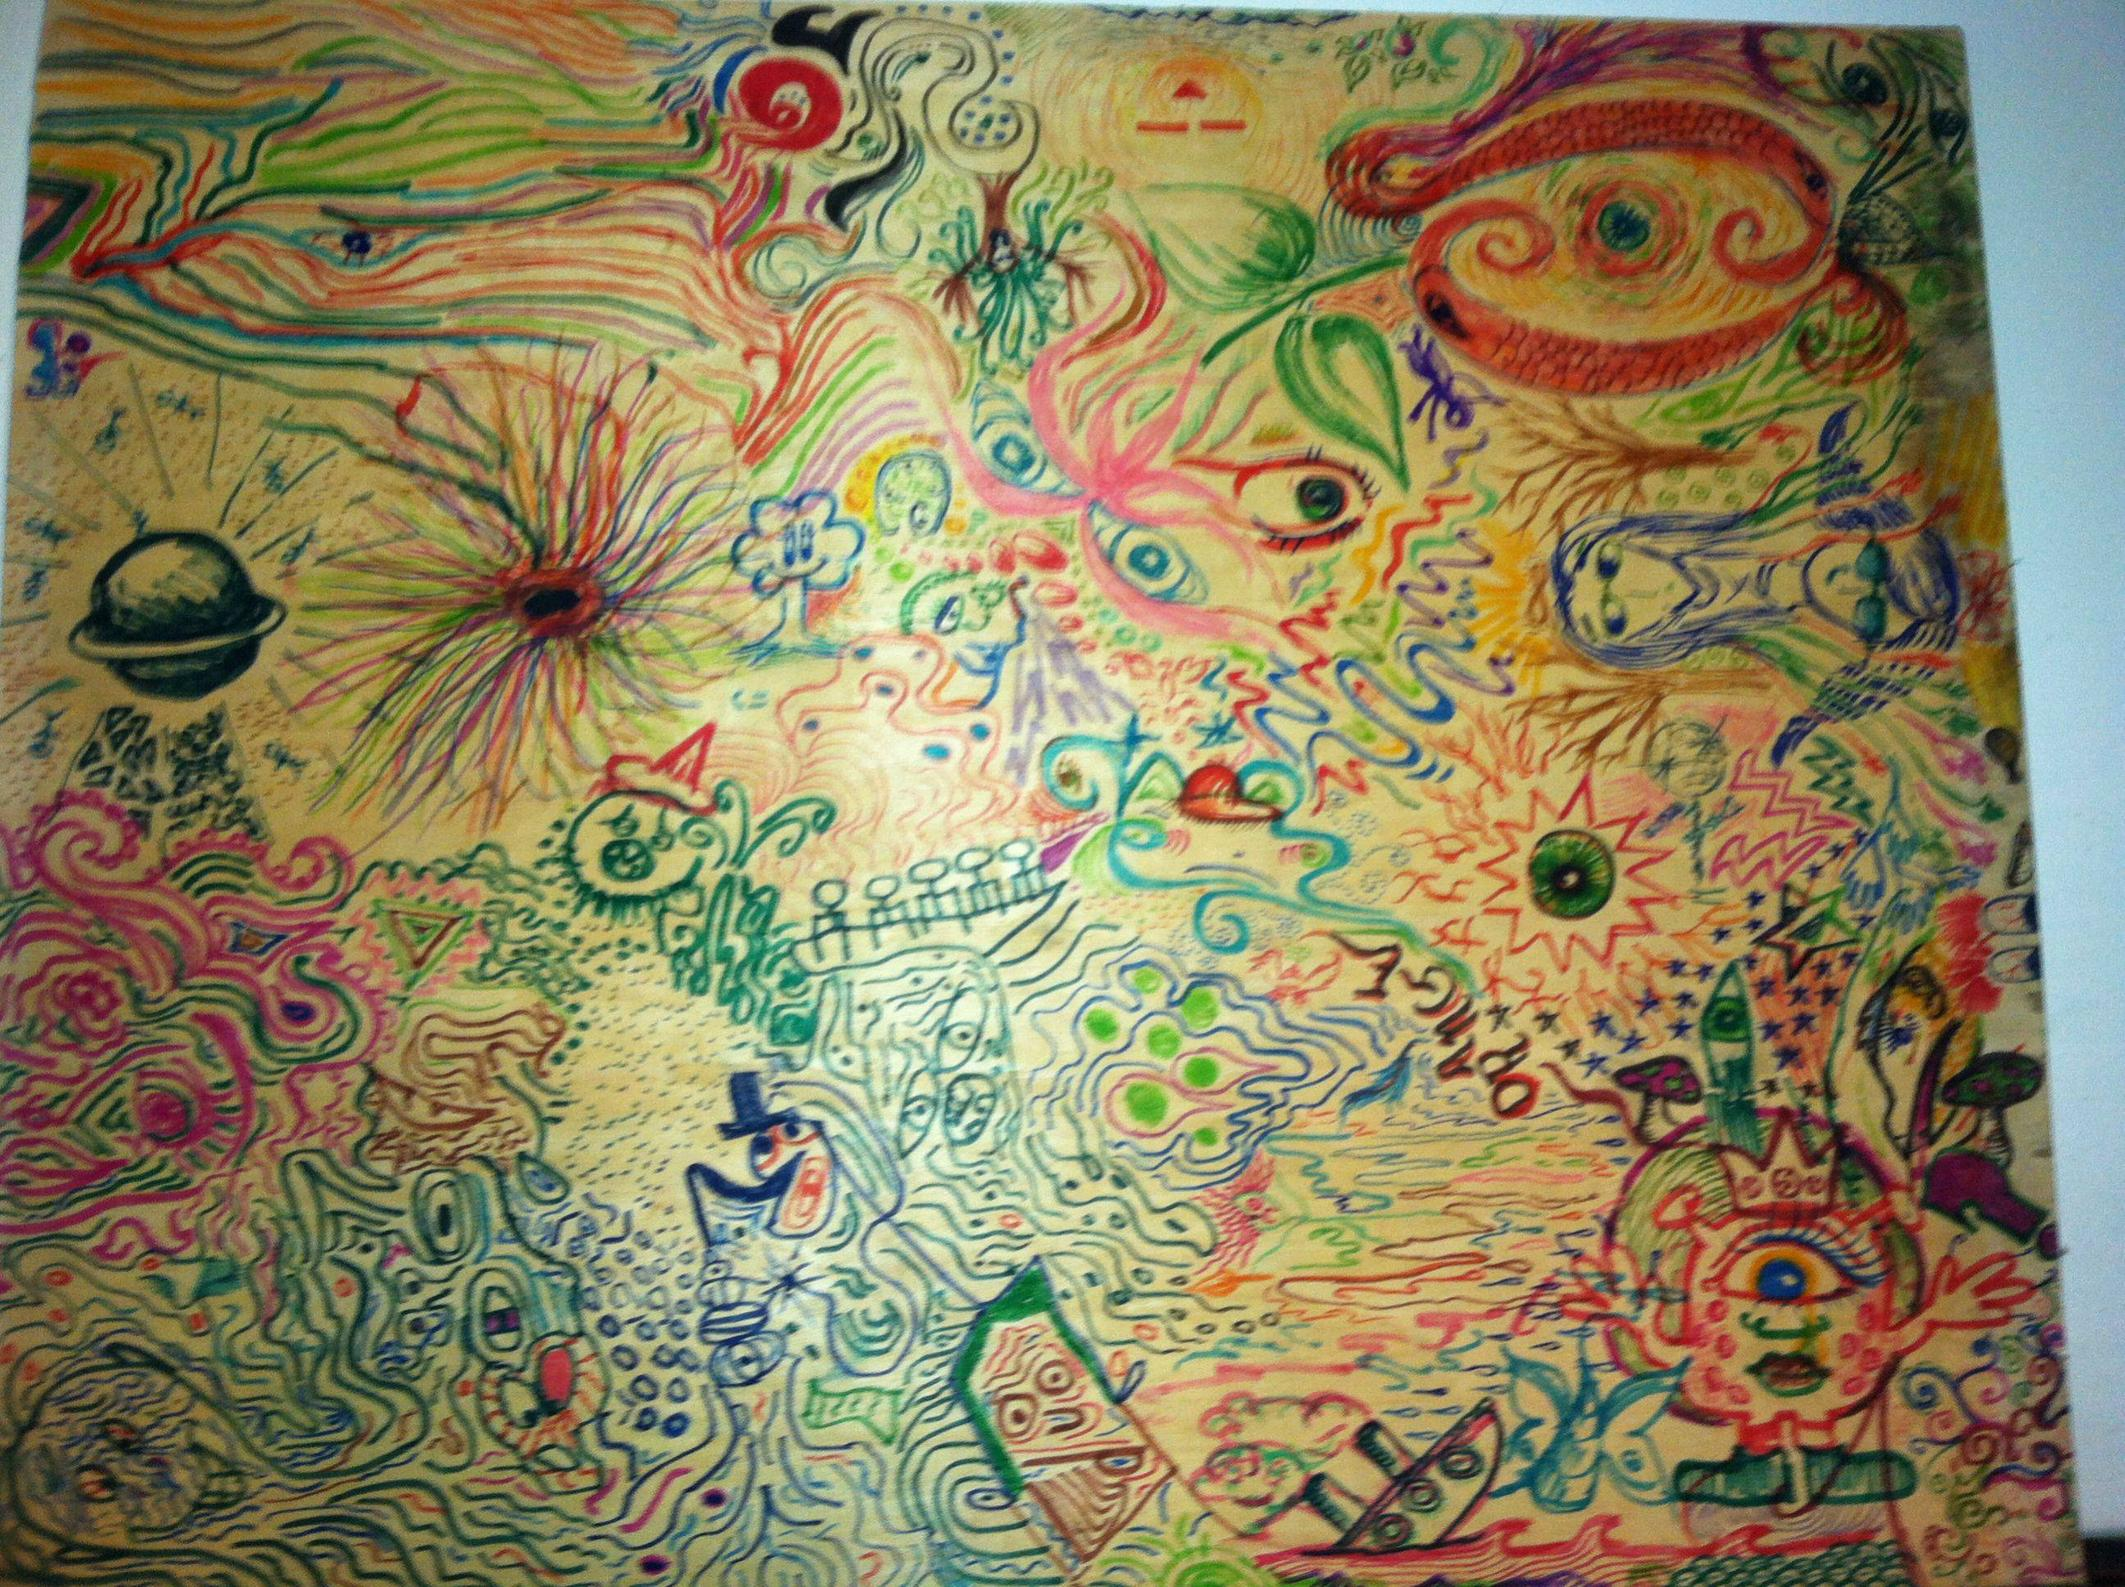 2125x1587 The Things You Draw On Acid